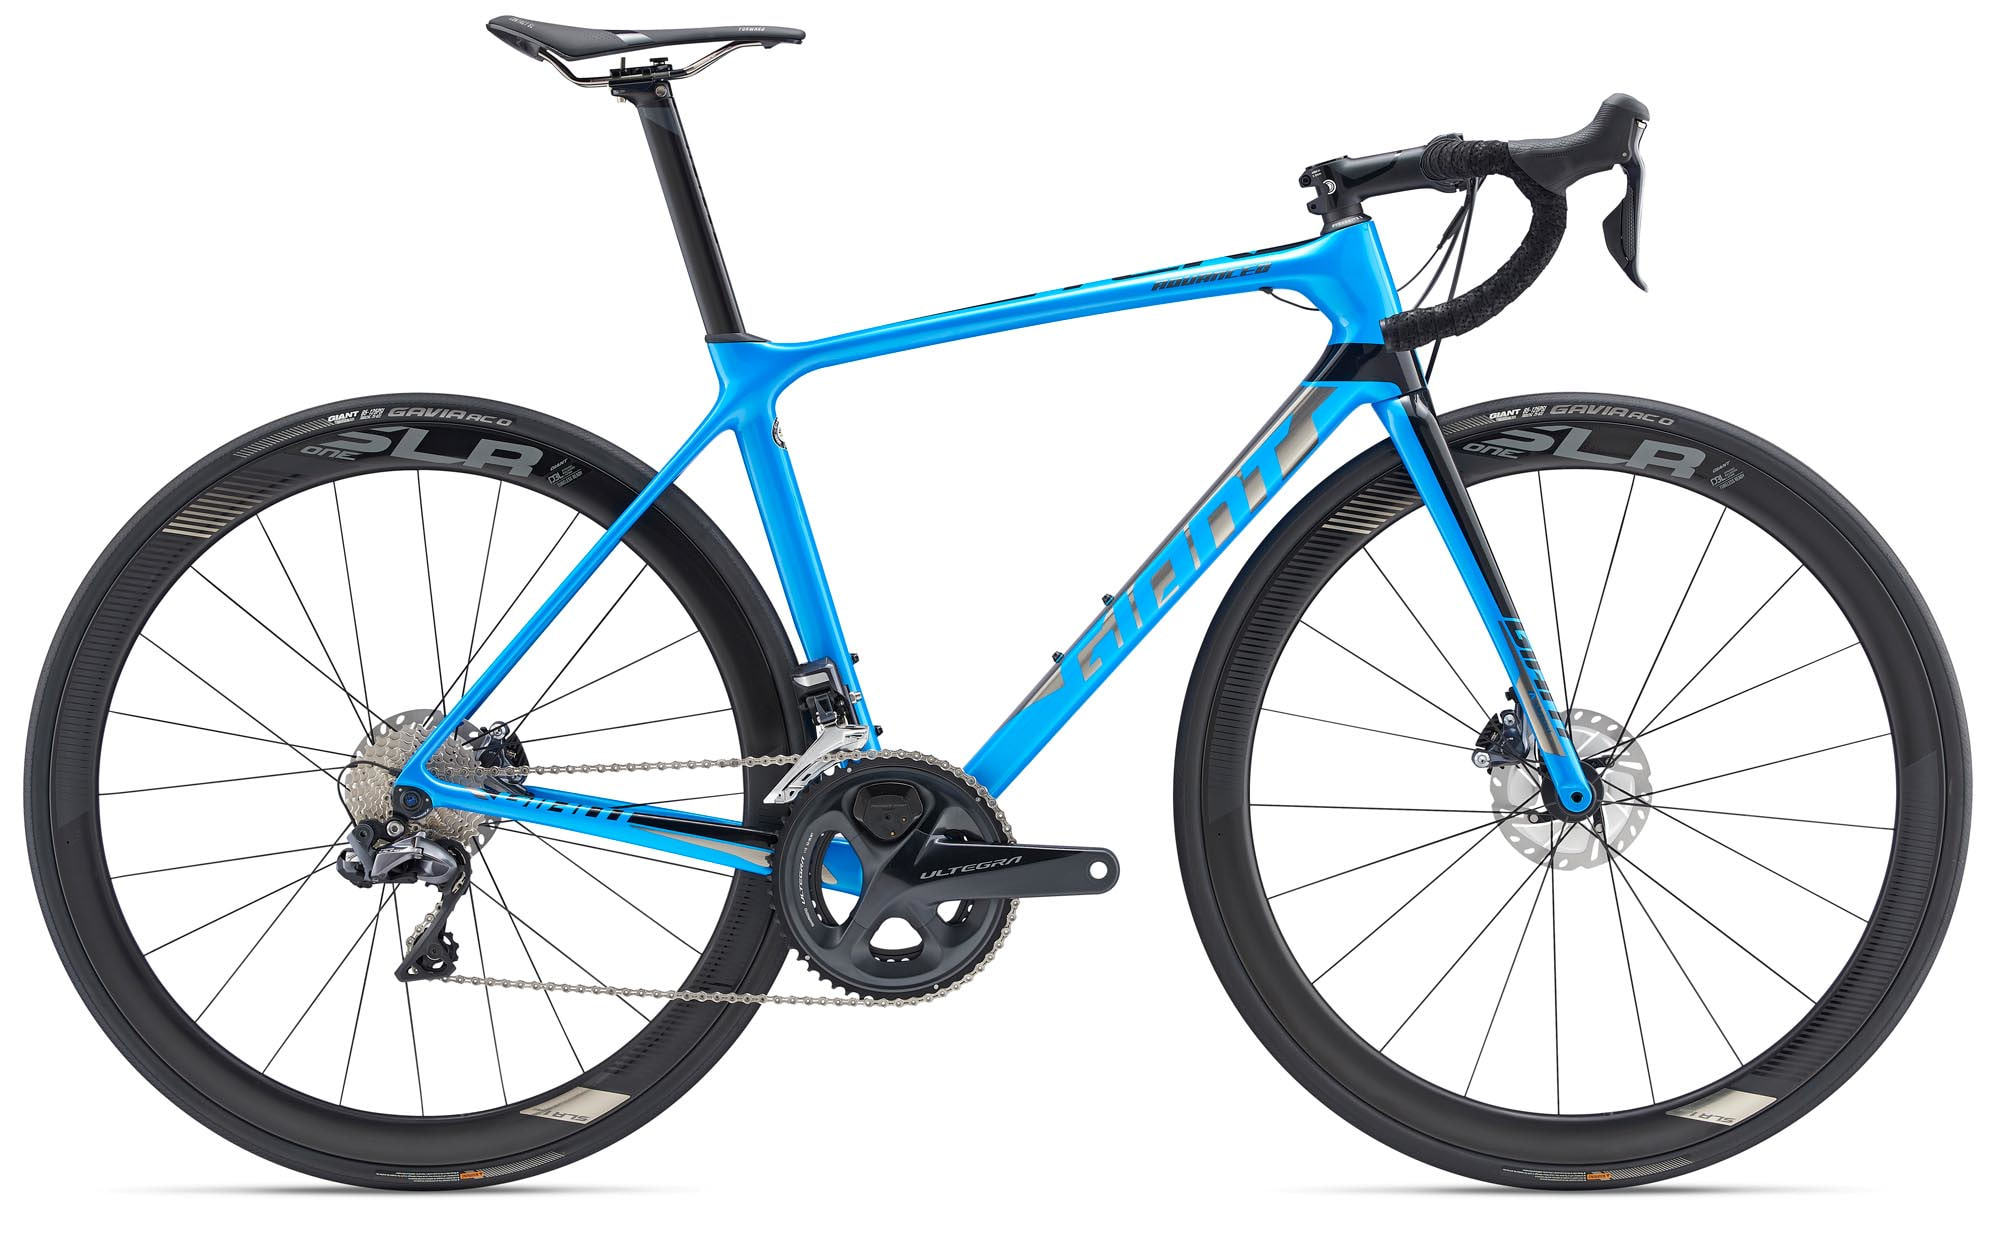 https://images.giant-bicycles.com/pbpndkvcalzwzxchjl93/preview.jpg